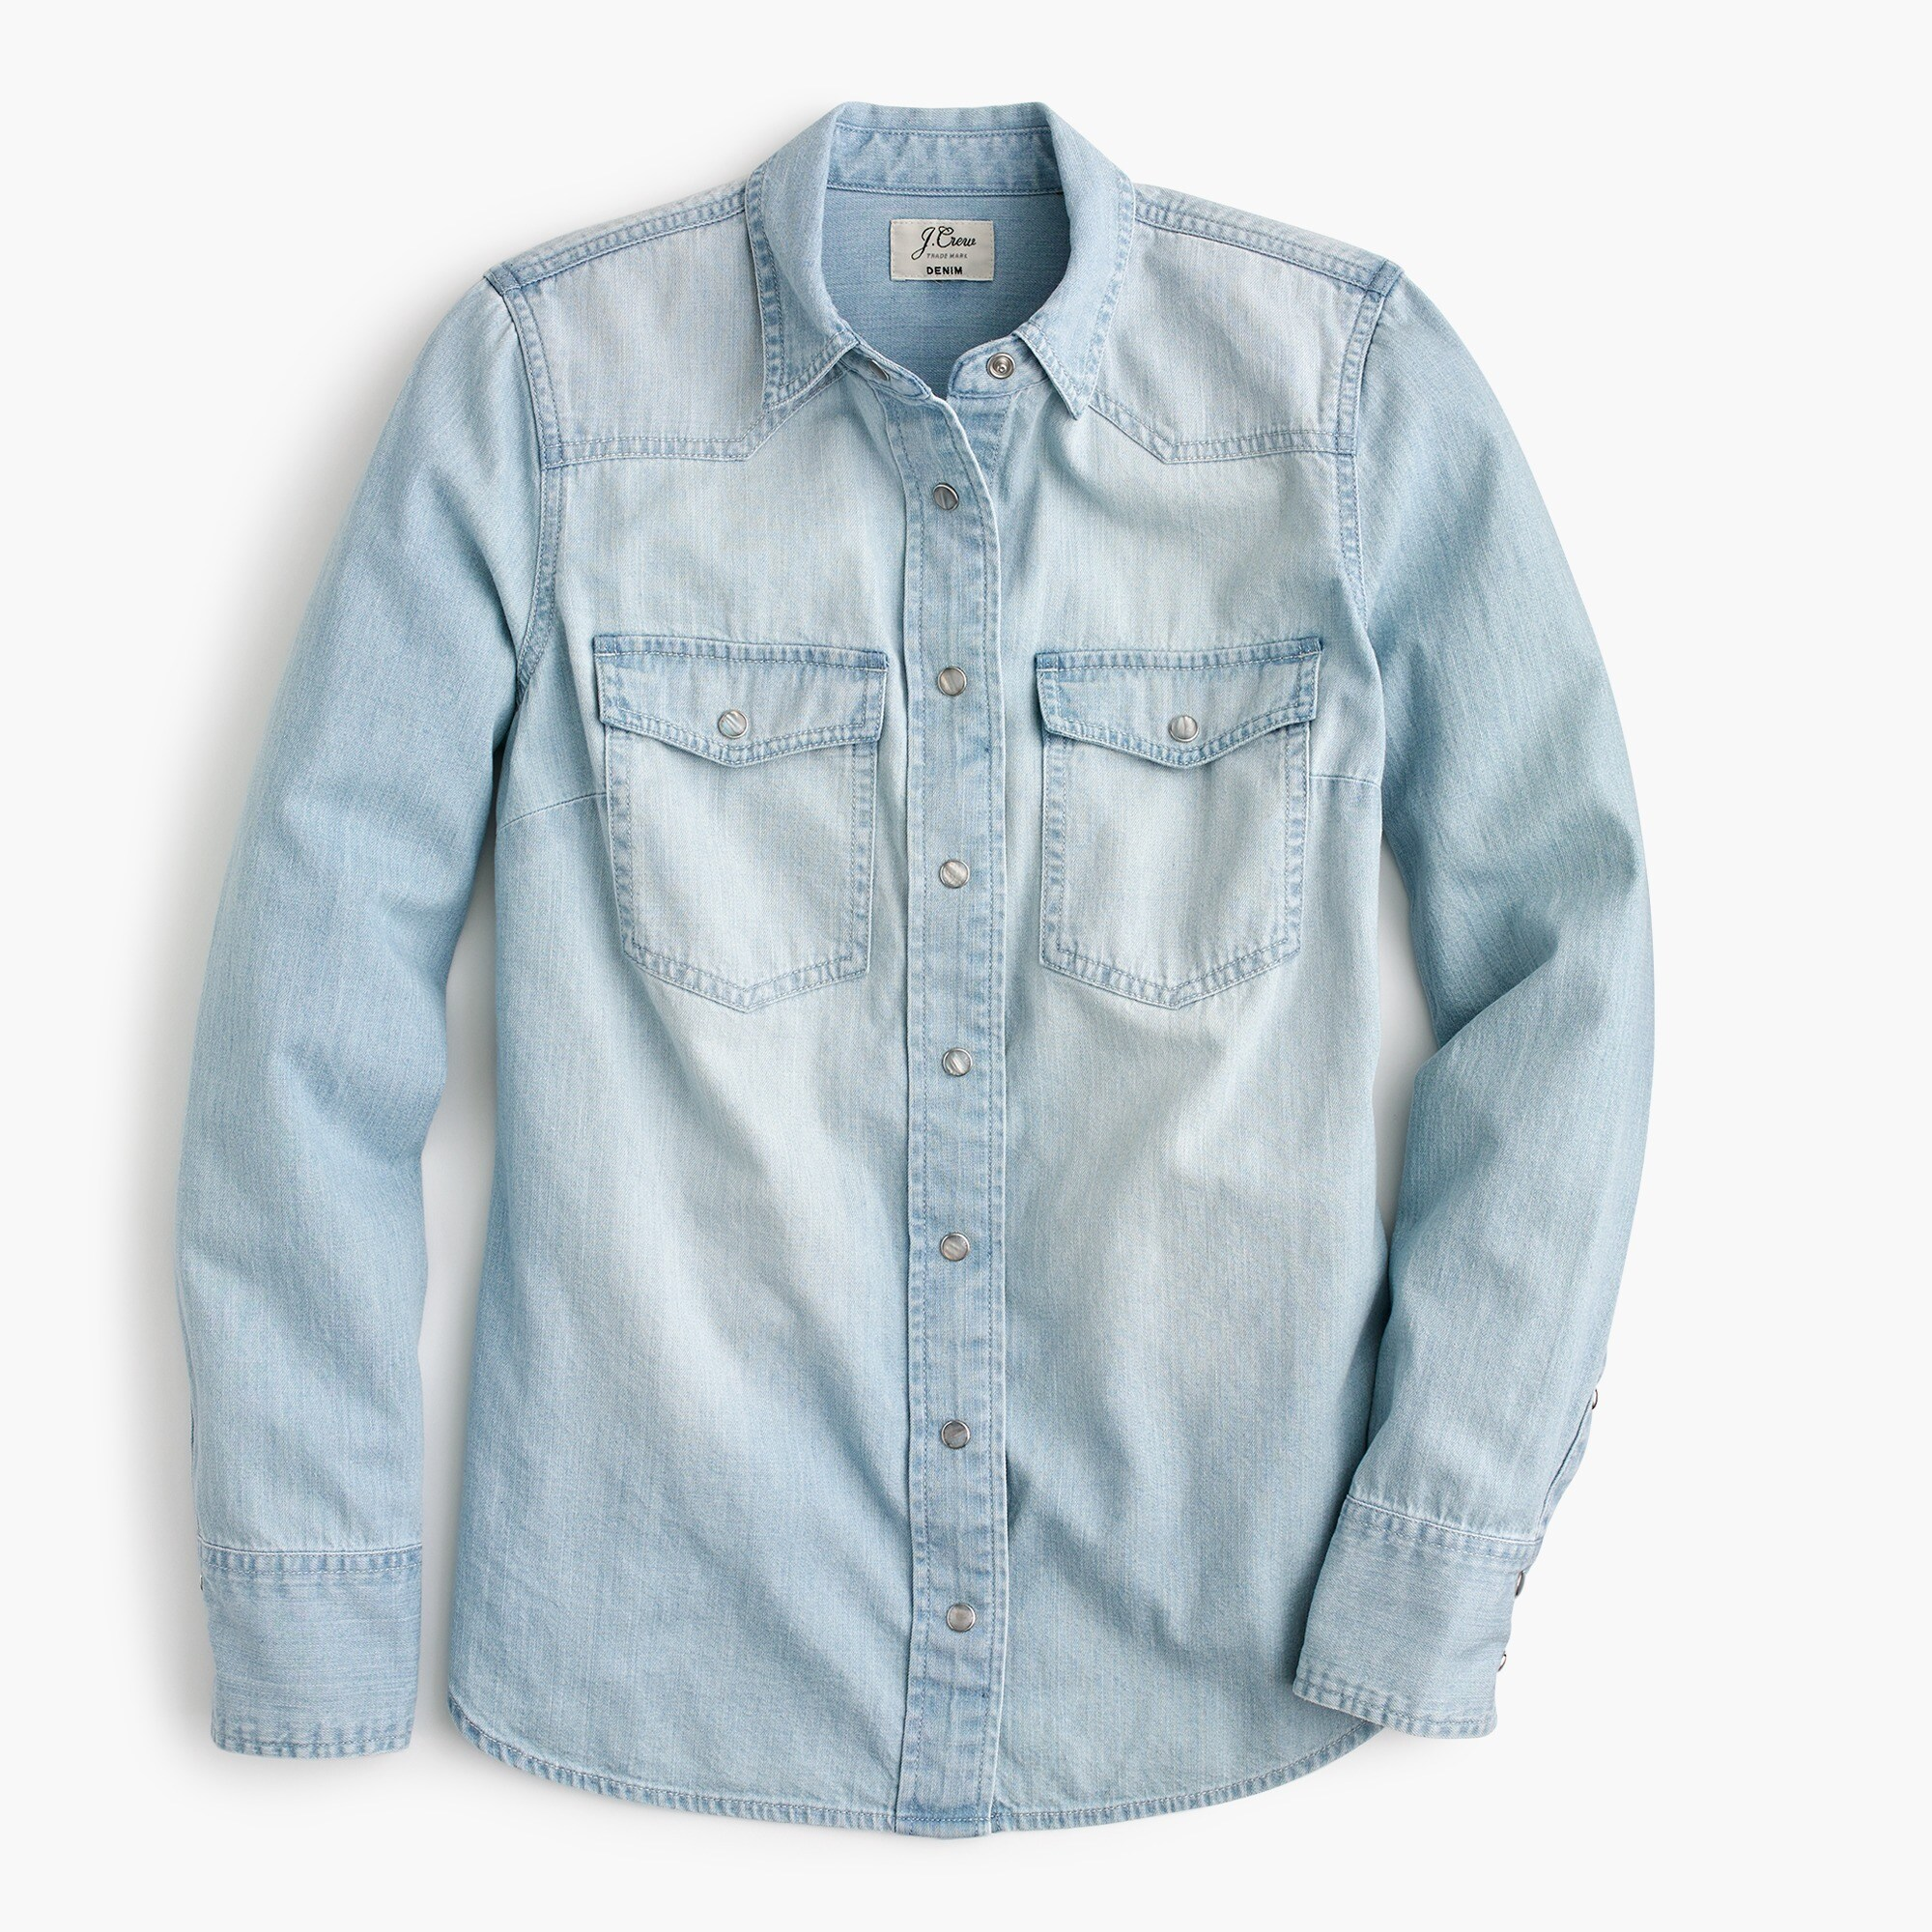 Petite Western shirt in light wash